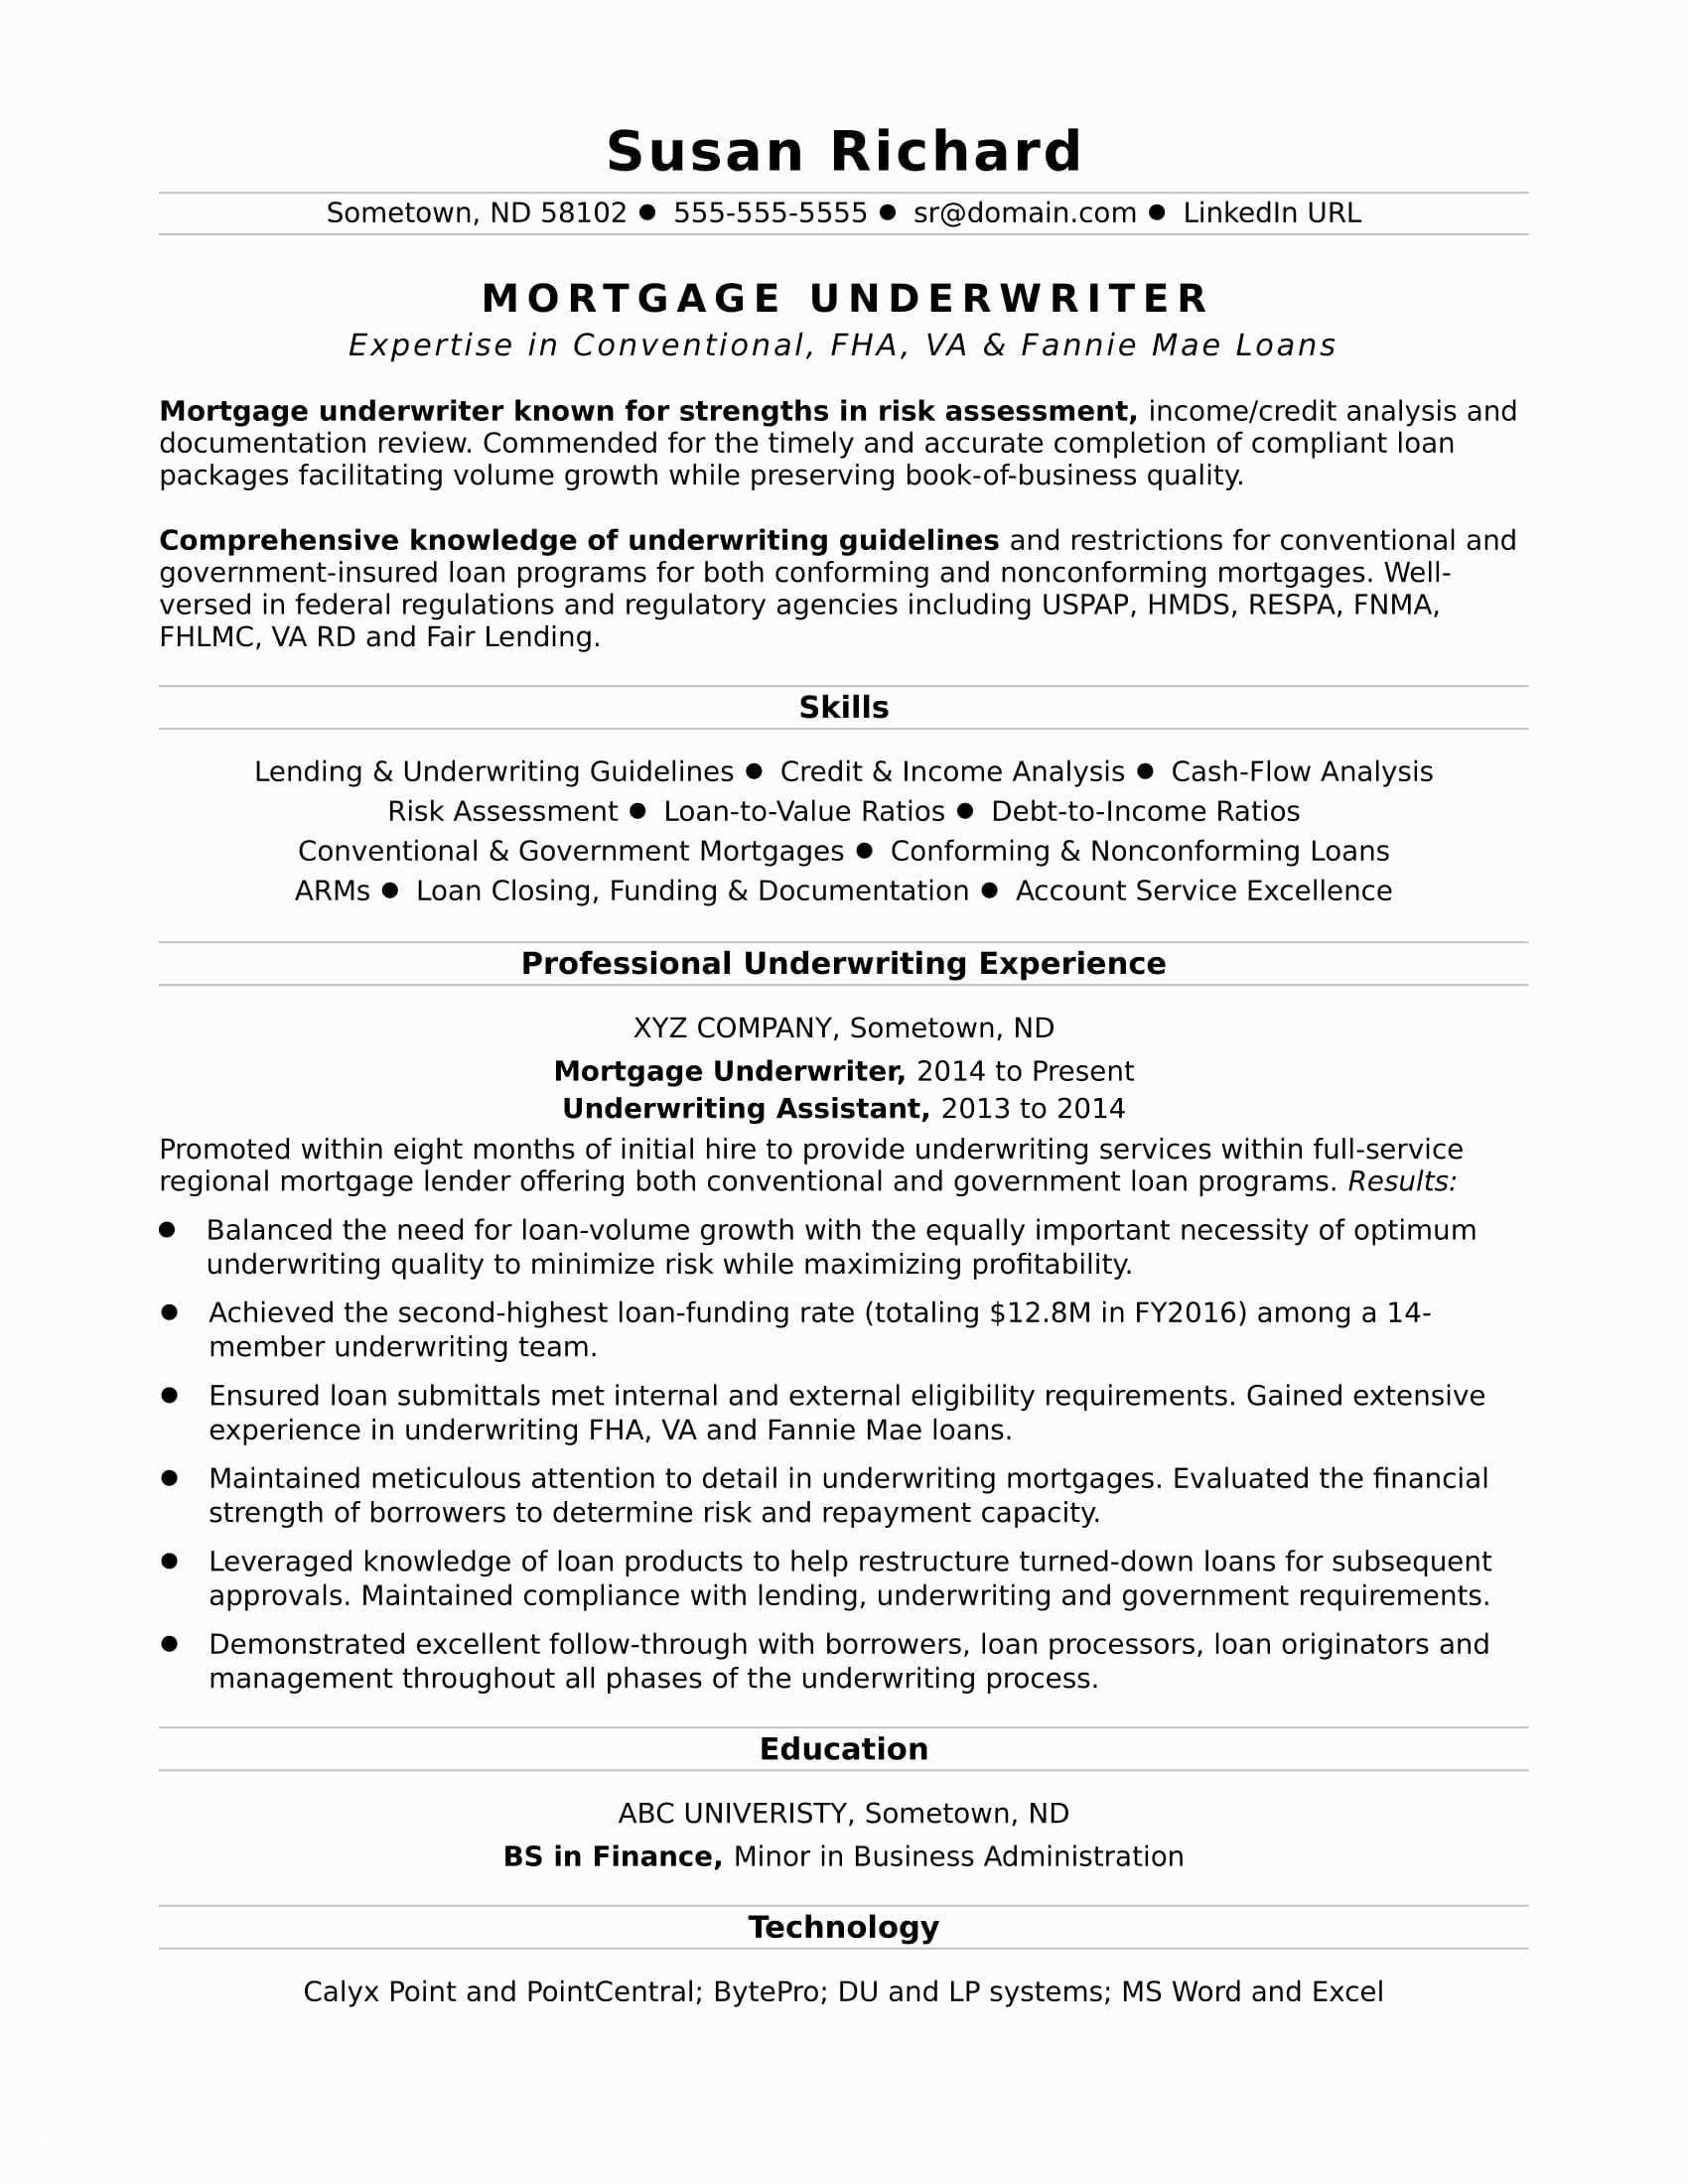 Teacher Cover Letter Template - Teacher Resume Cover Letters New Sample Cover Letter Template Lovely